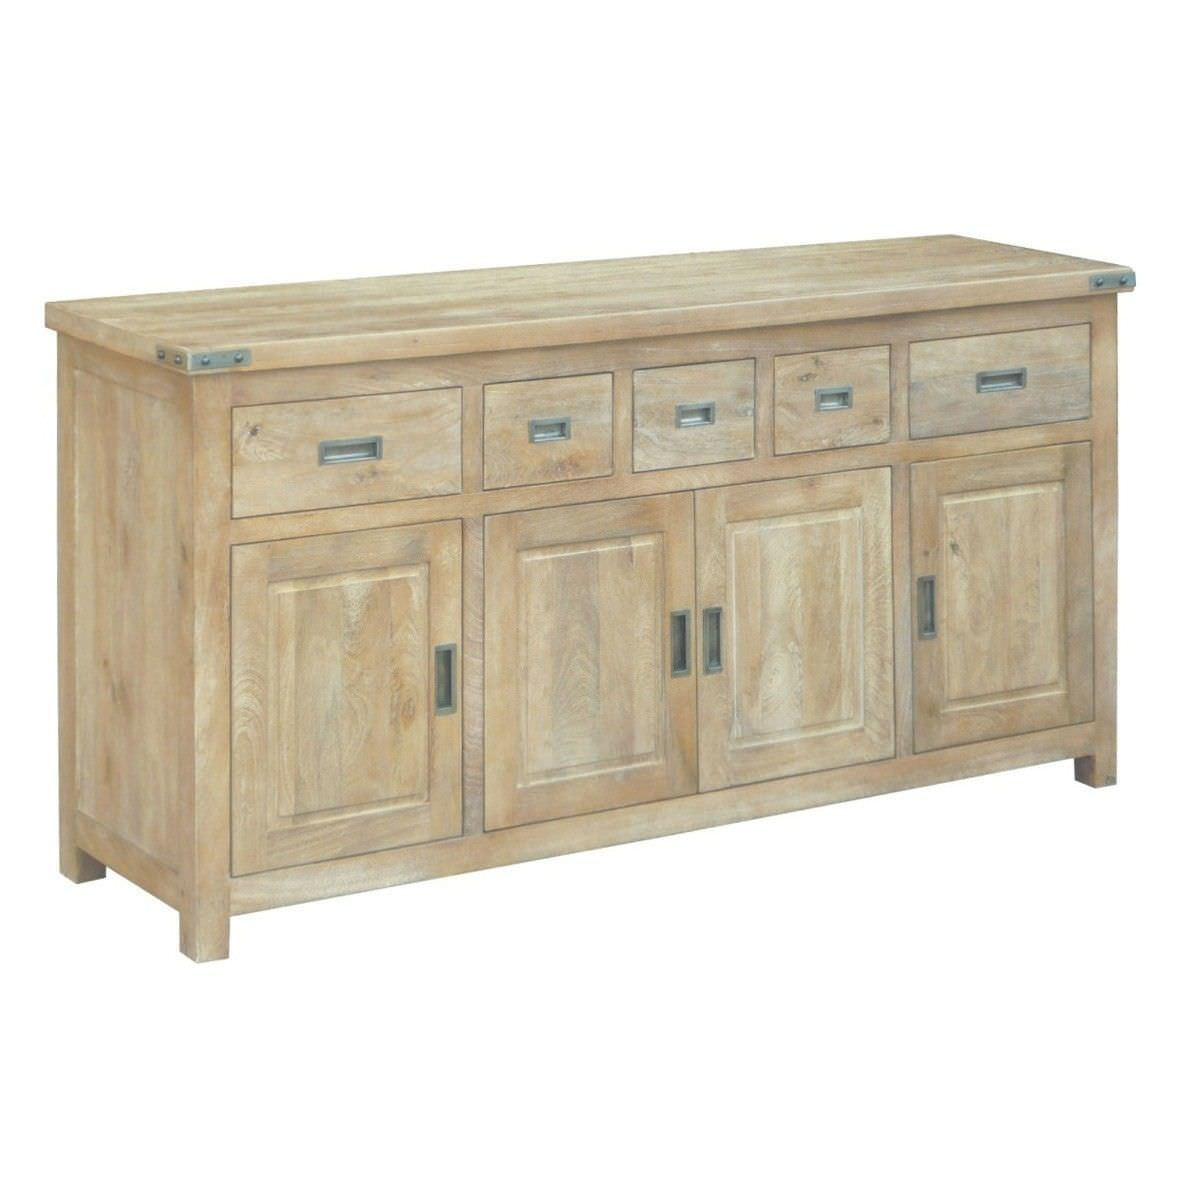 Oatley Mango Wood 4 Door 5 Drawer Buffet Table, 180cm, Honey Wash